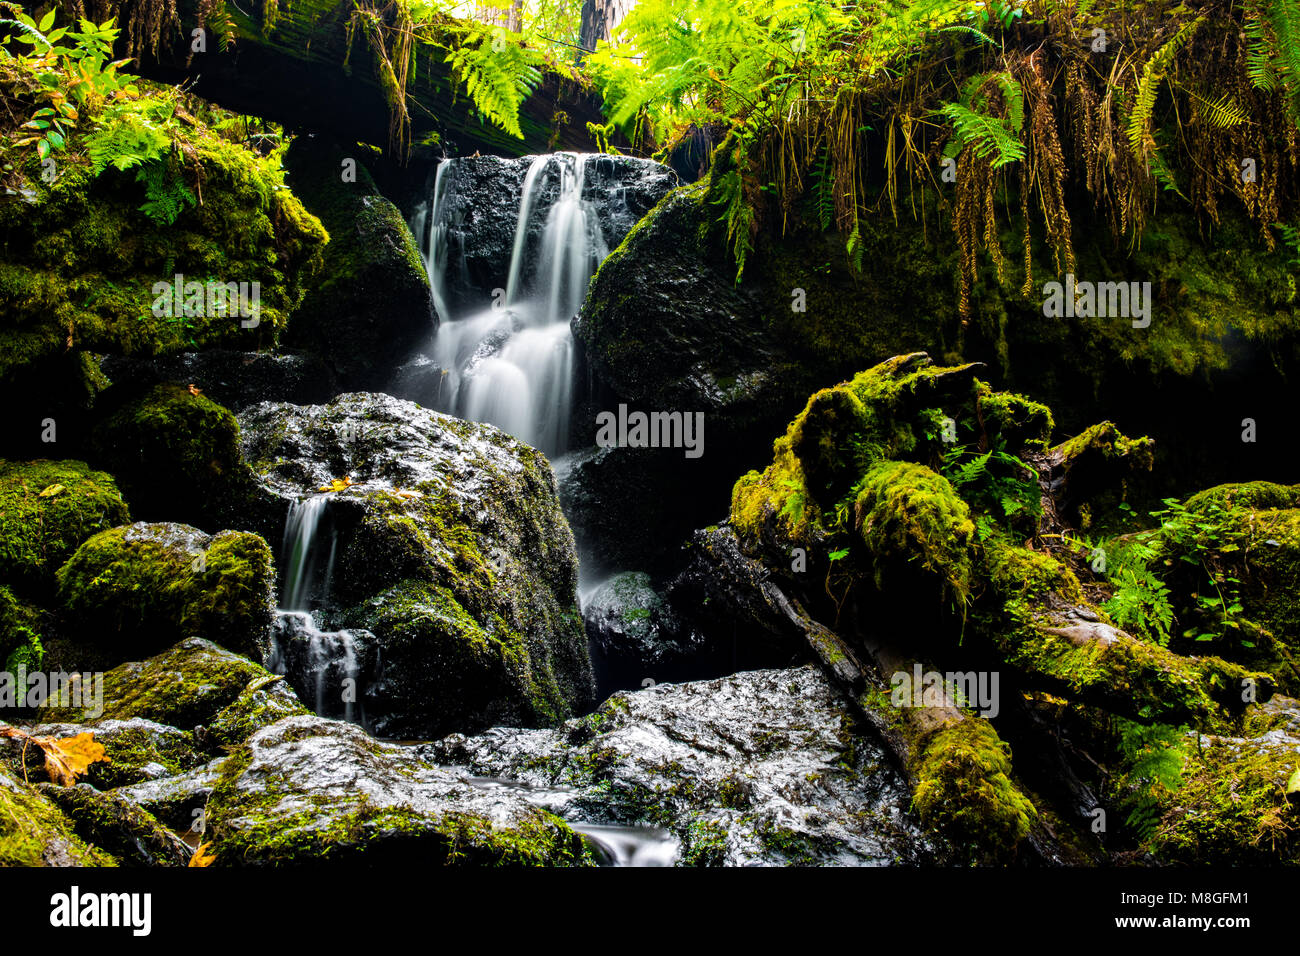 Small Forest Stream Waterfall - Stock Image